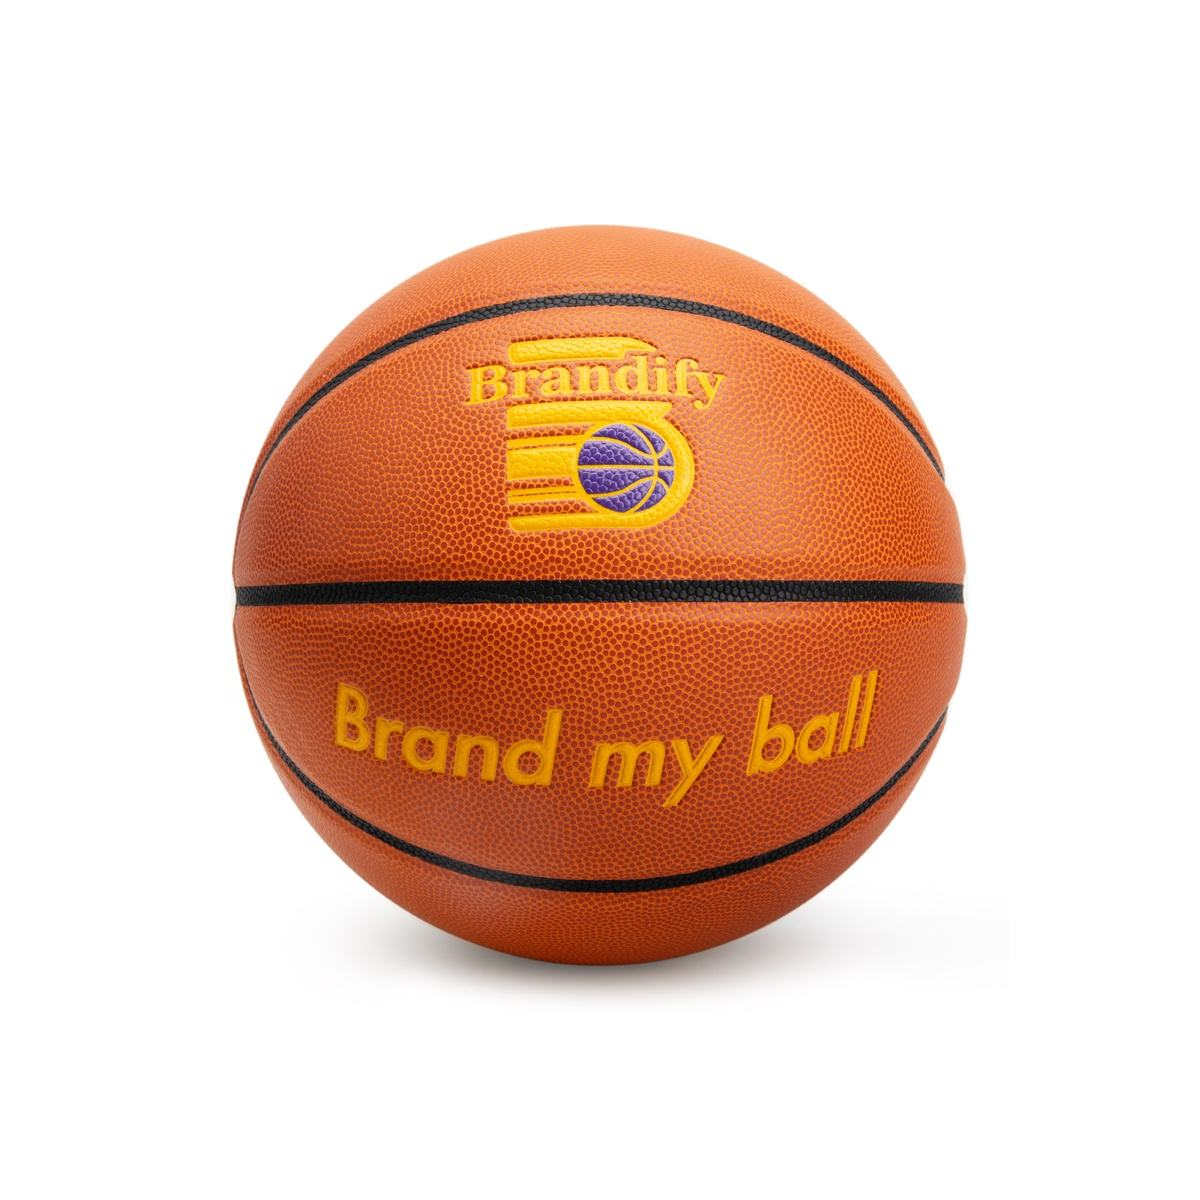 Custom orange chinese microfiber leather similar to evo basketball ball for sale in good price